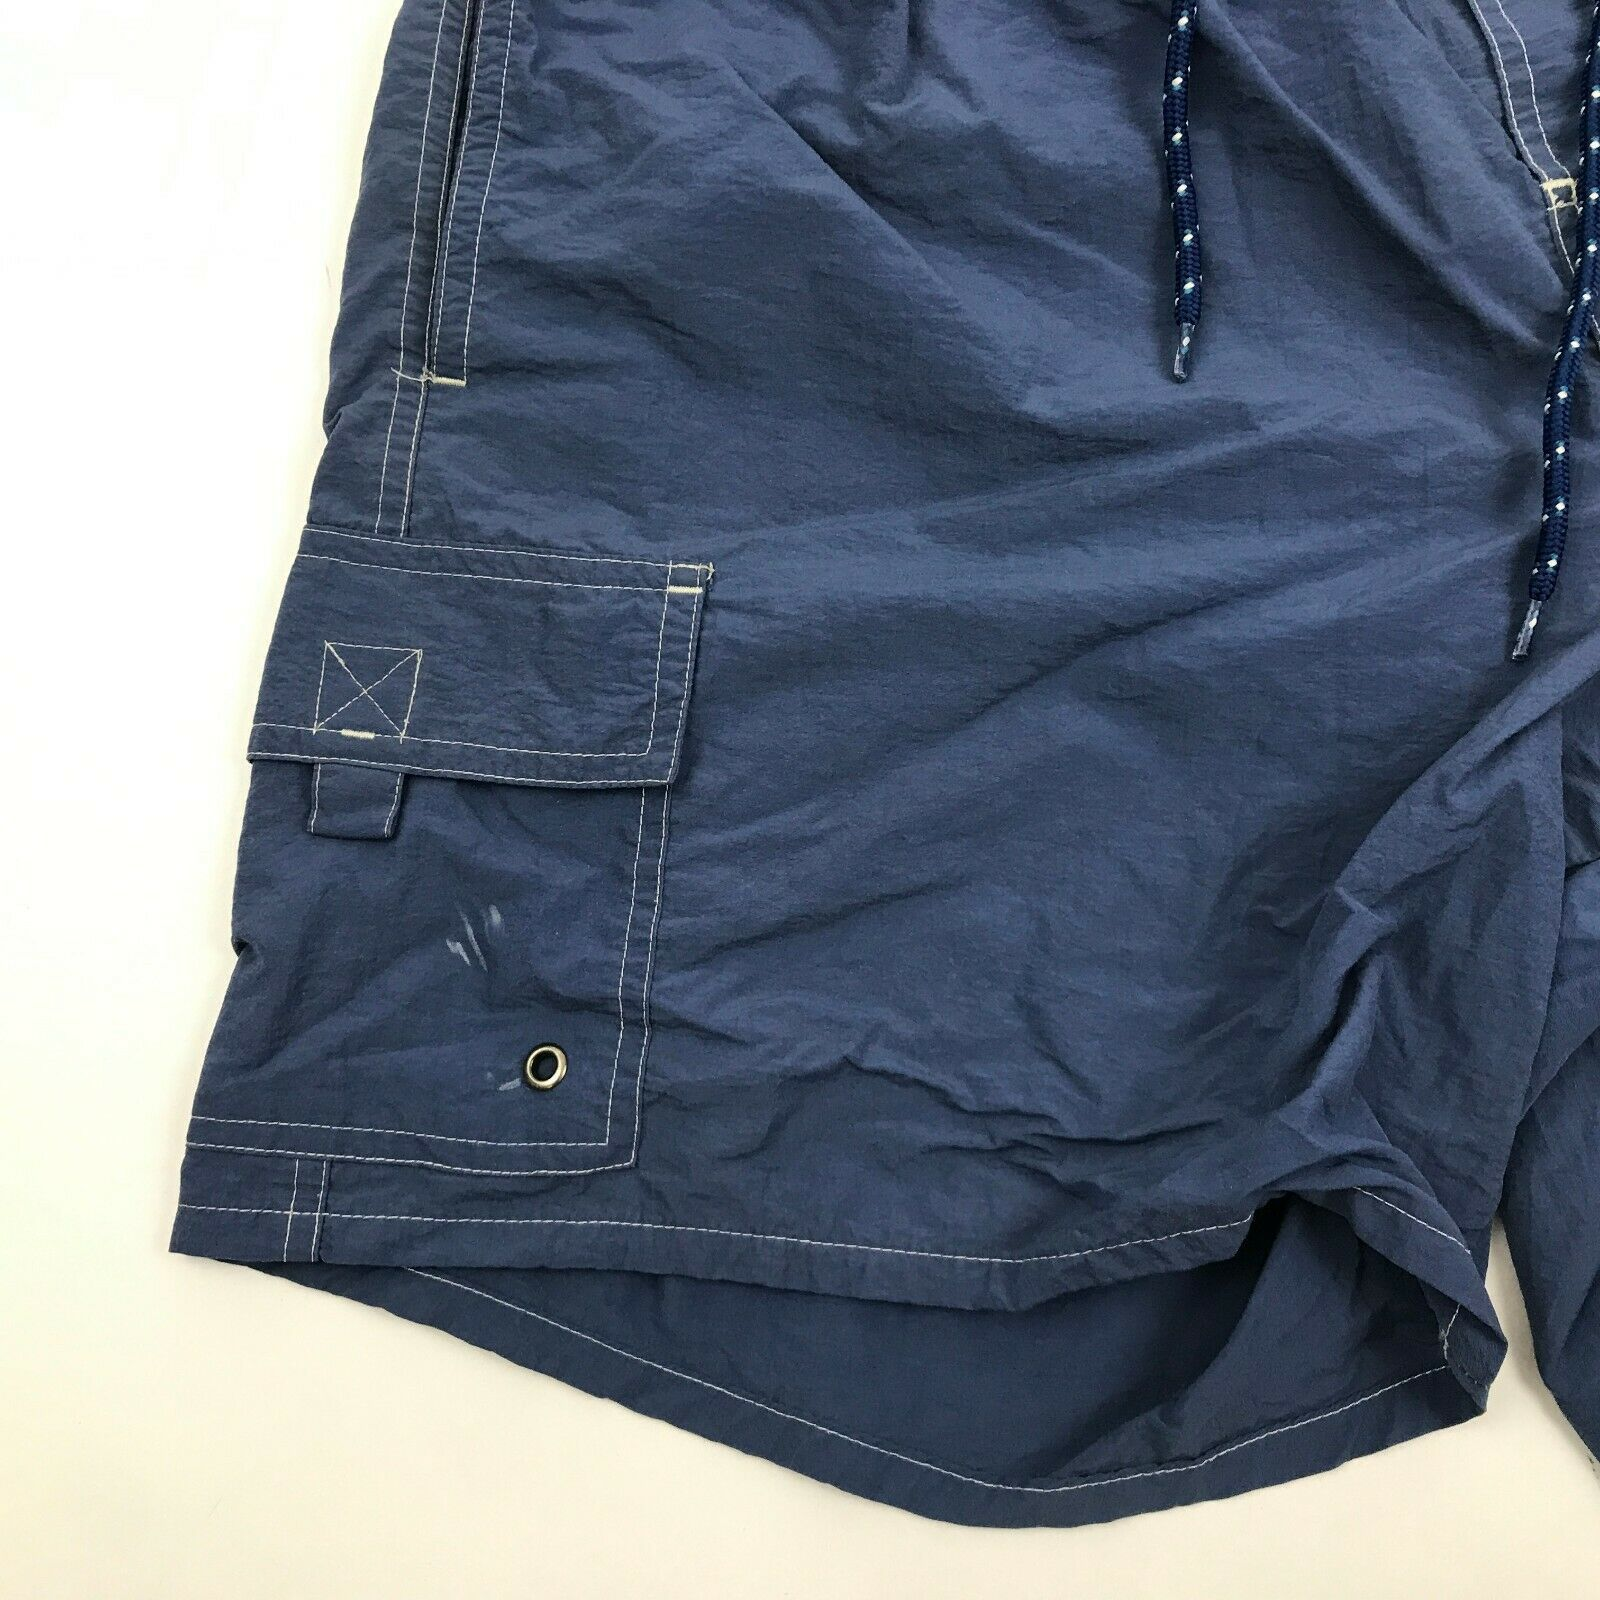 Primary image for VINTAGE Catalina Swim Trunks Size Medium M Blue Swimsuit Cargo Pockets Lined Men